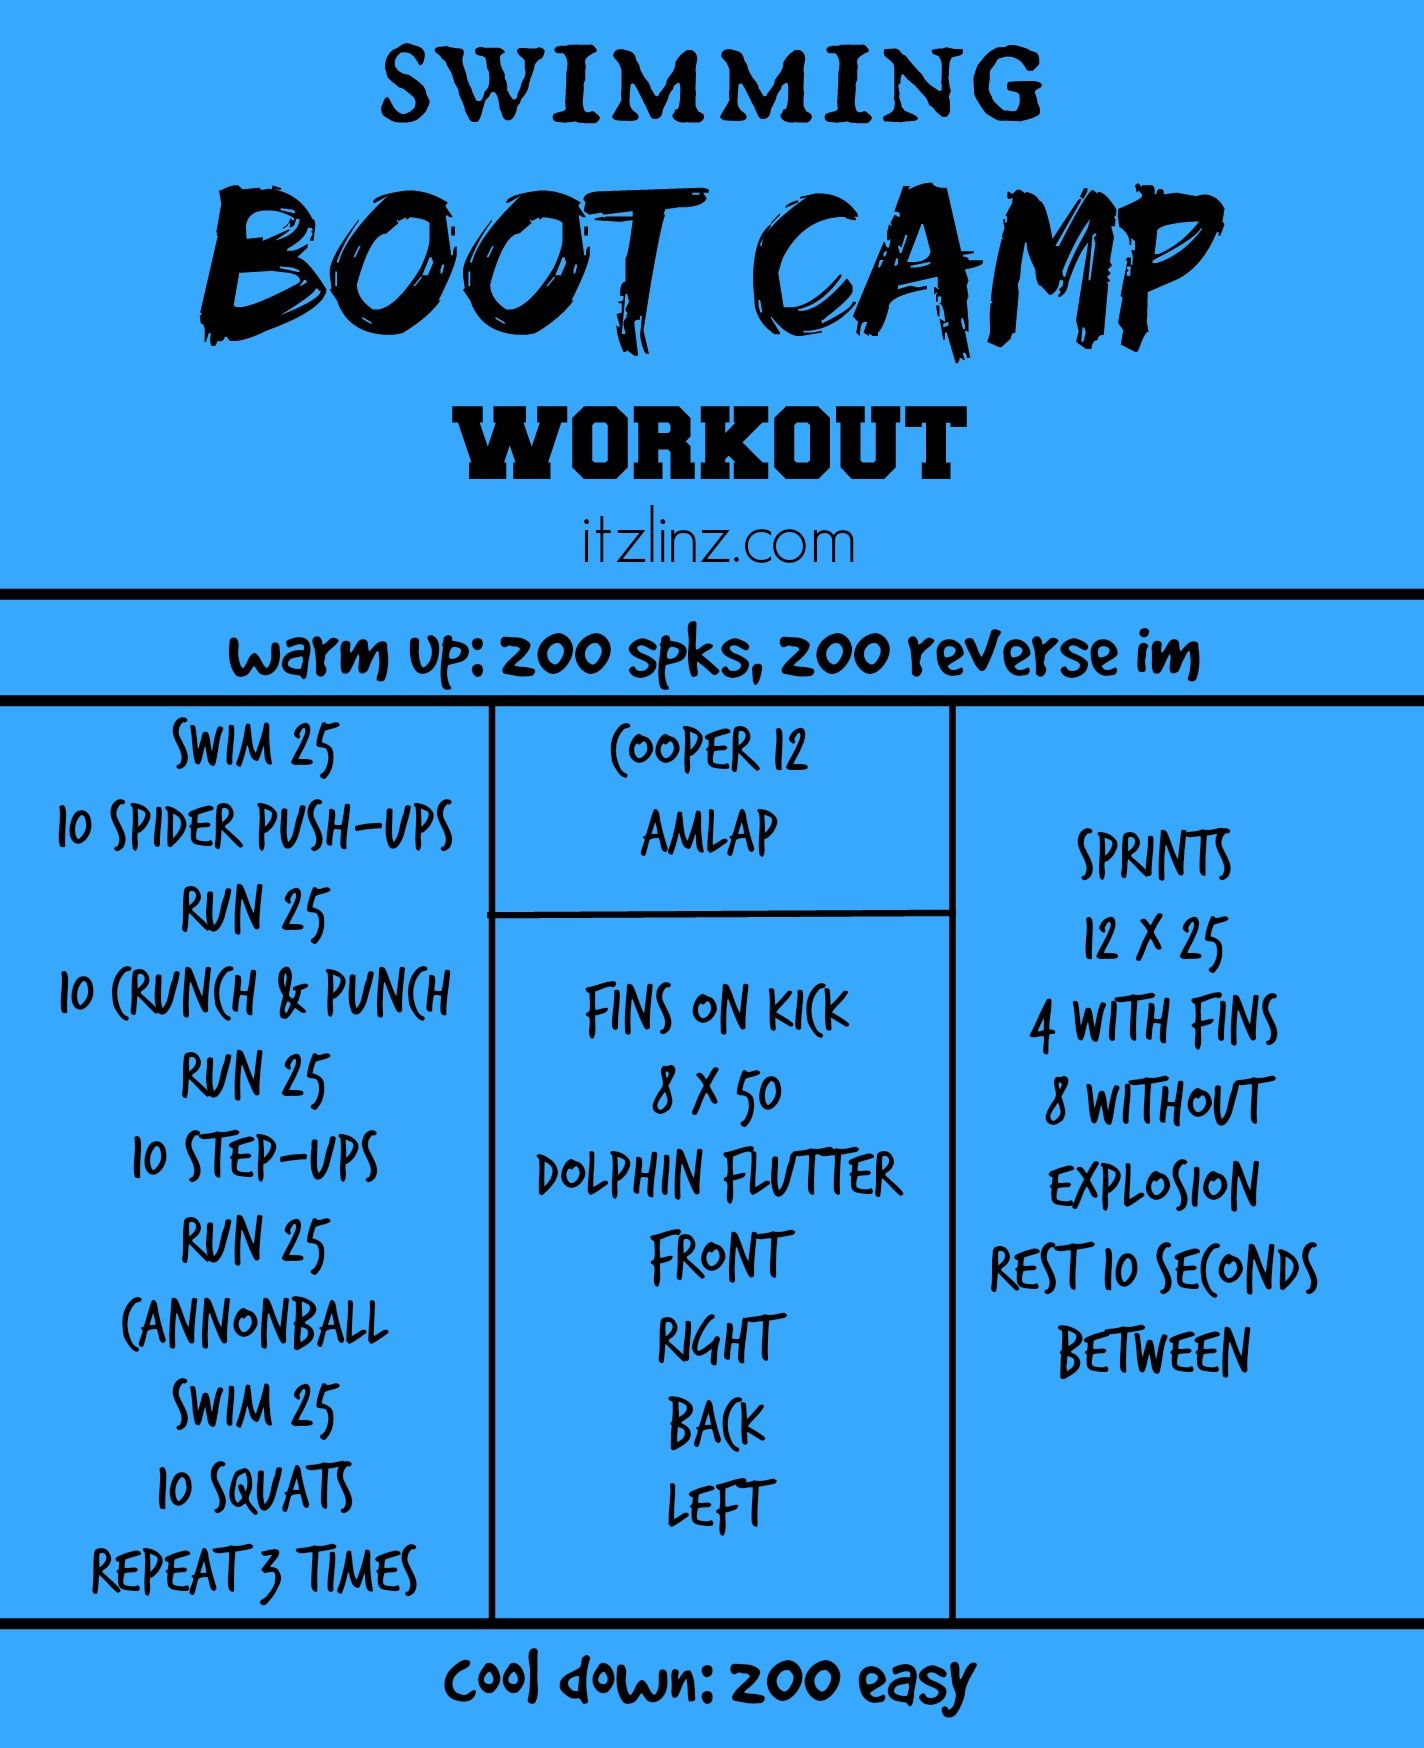 Swimming Boot Camp Workout | Fitness | Boot camp workout ...